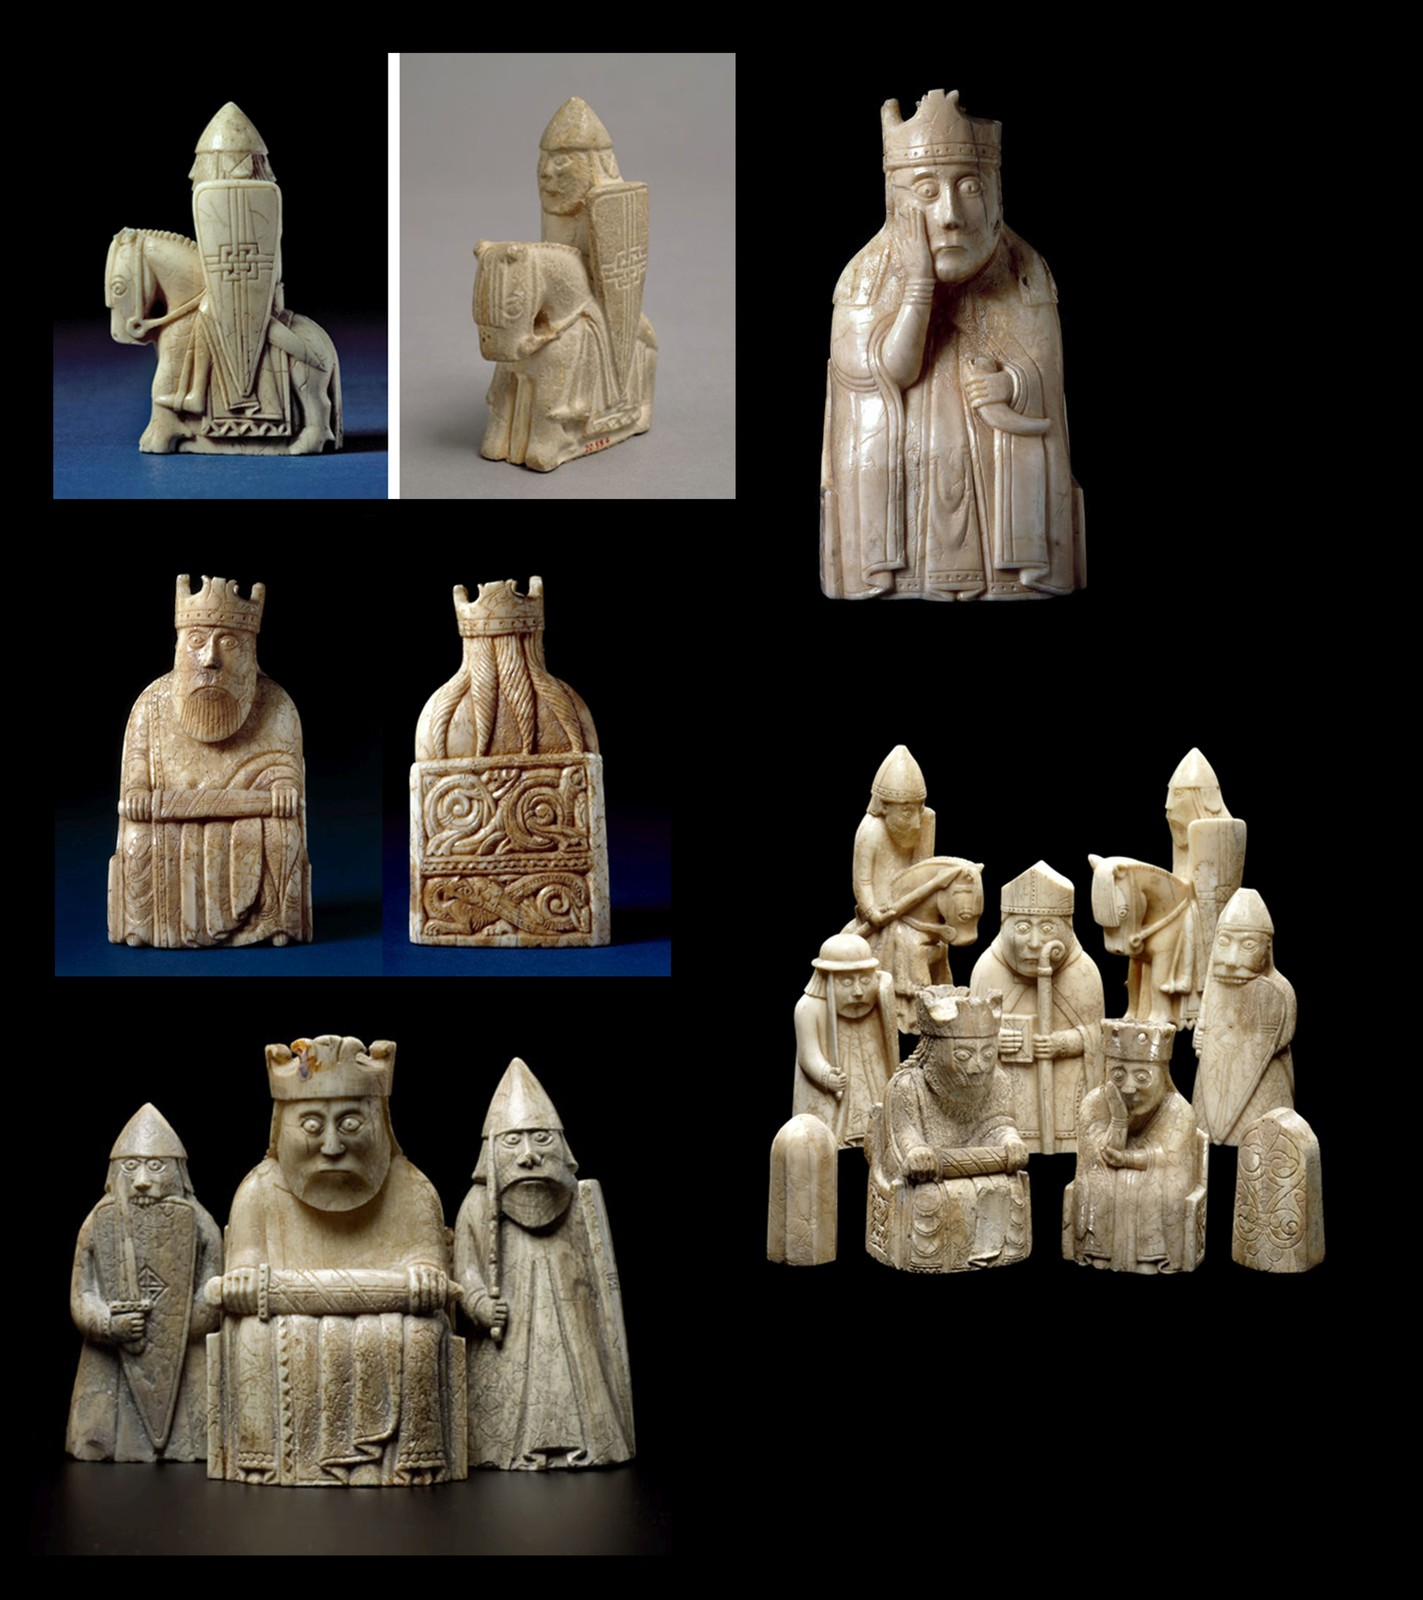 Our inspiration came from the medieval ivory pieces.